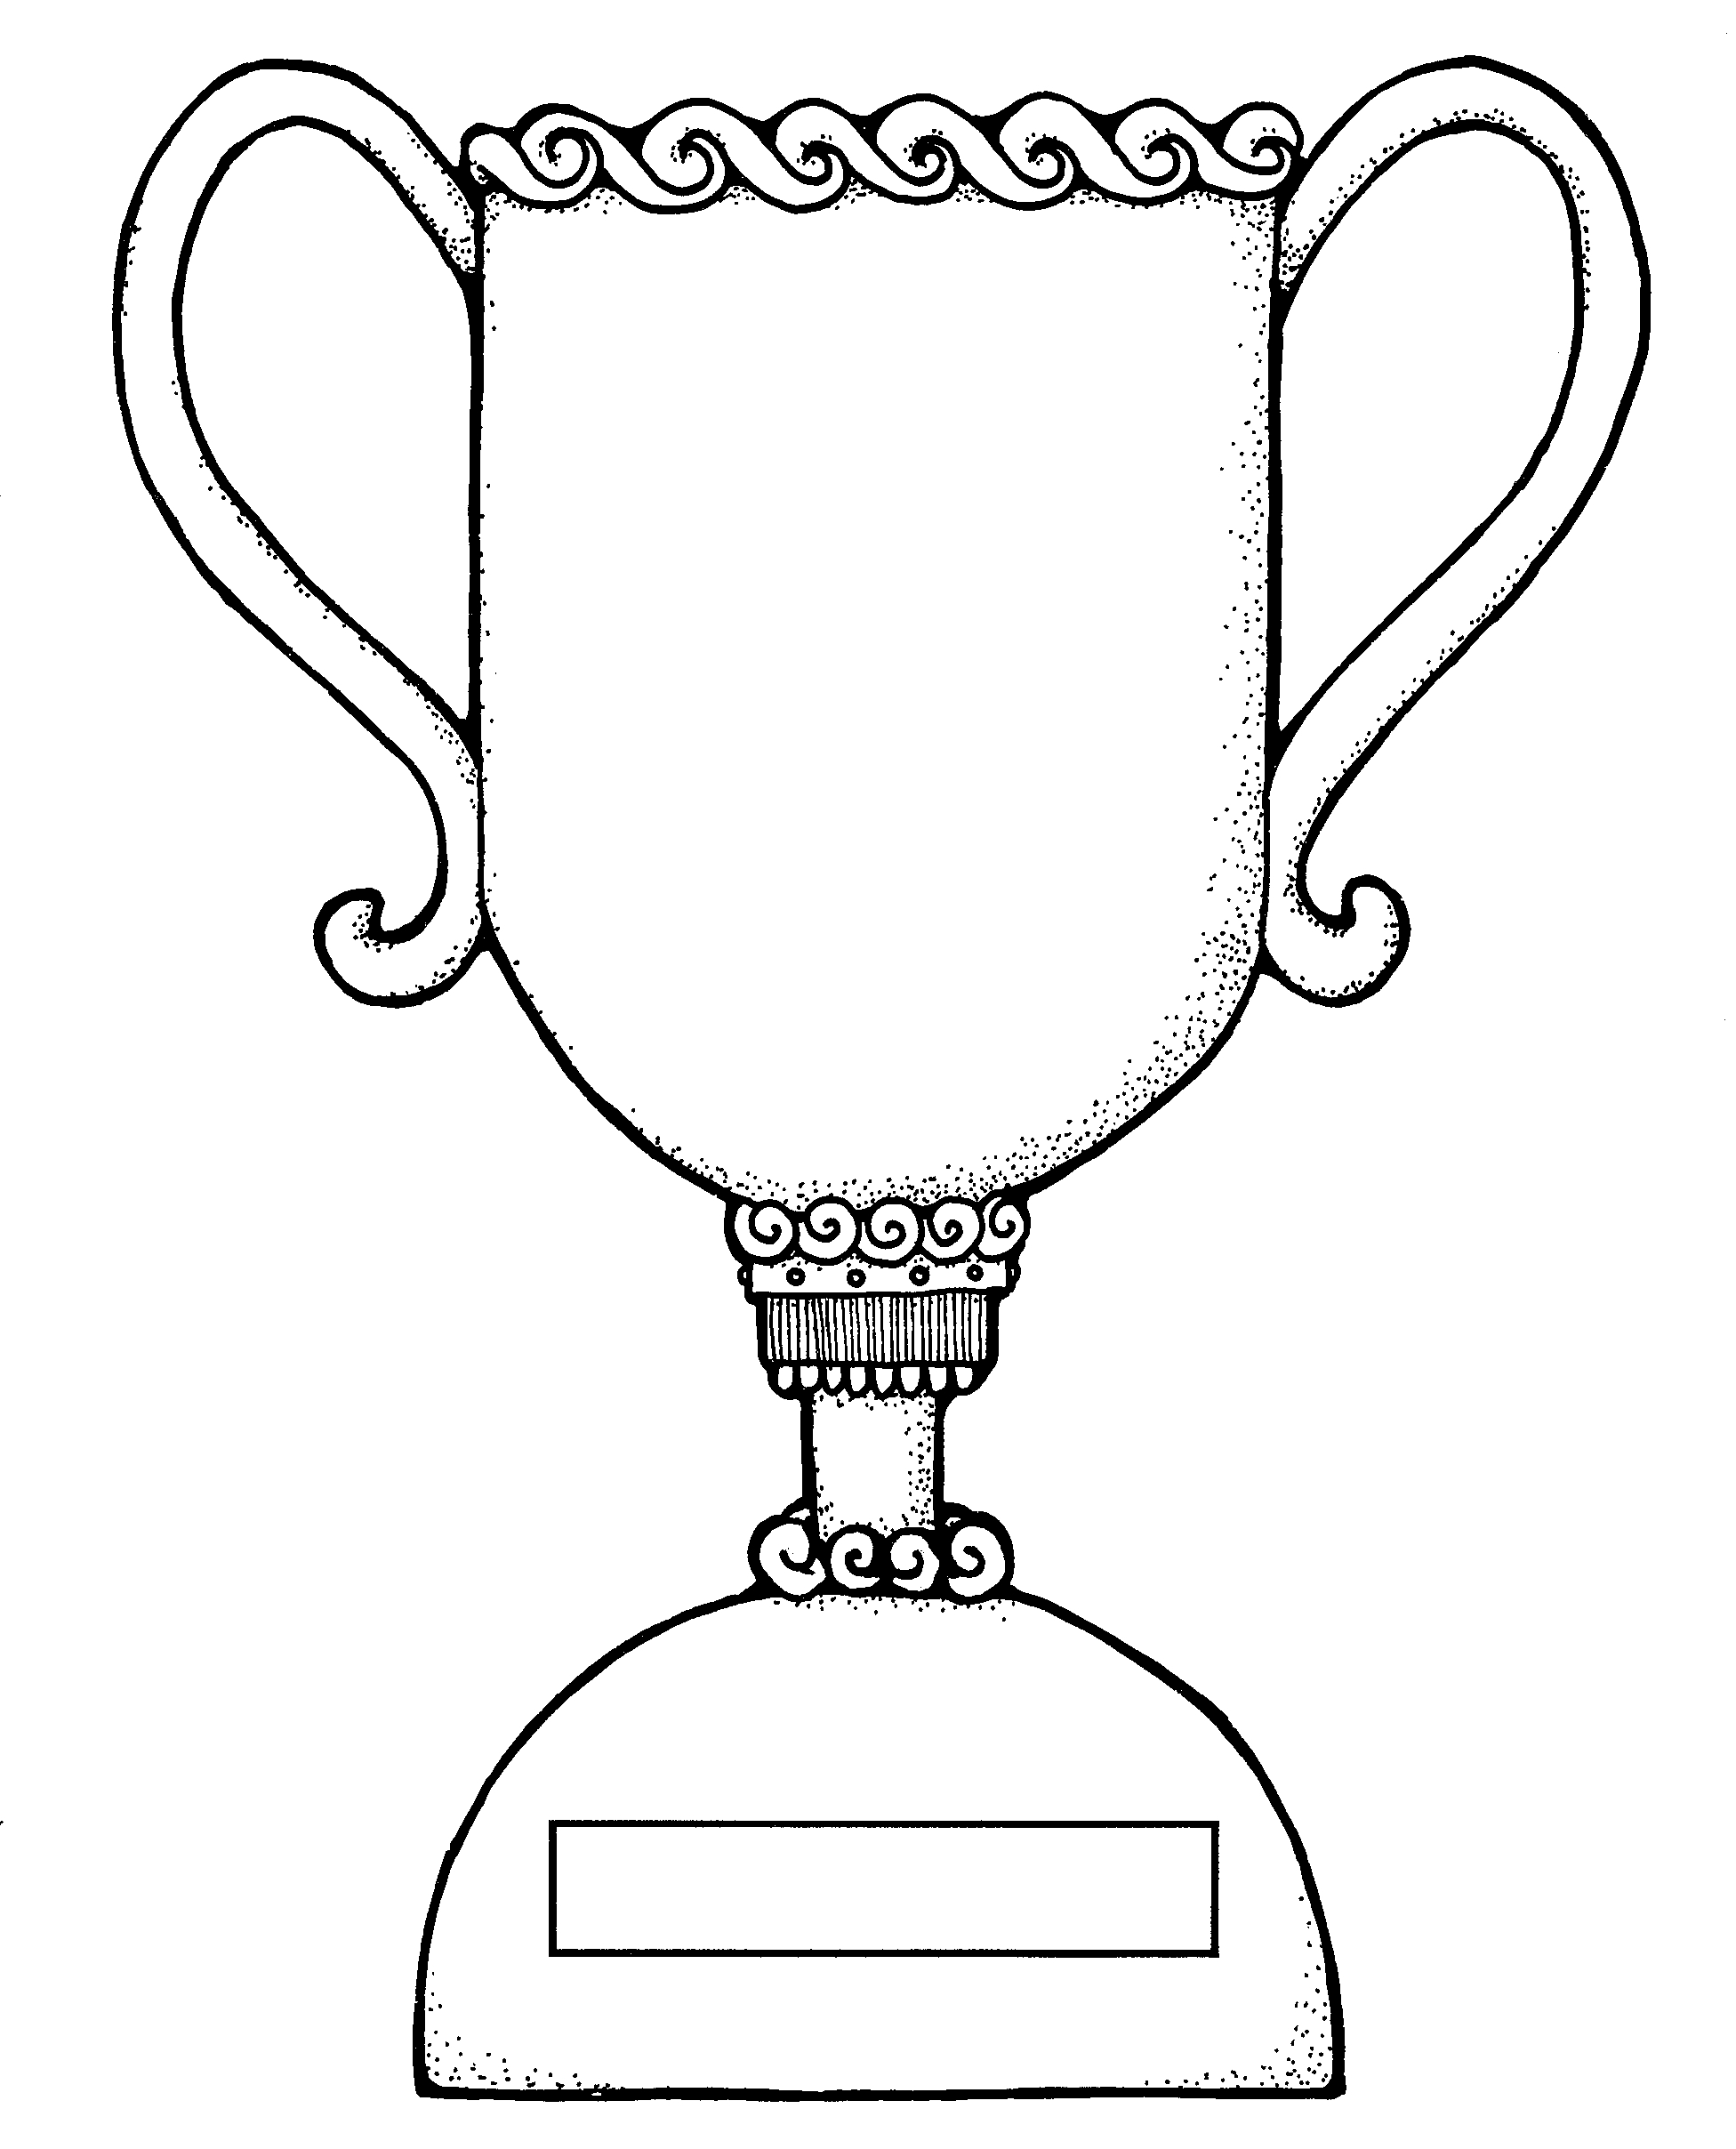 Free Sports Cup Cliparts, Download Free Clip Art, Free Clip.